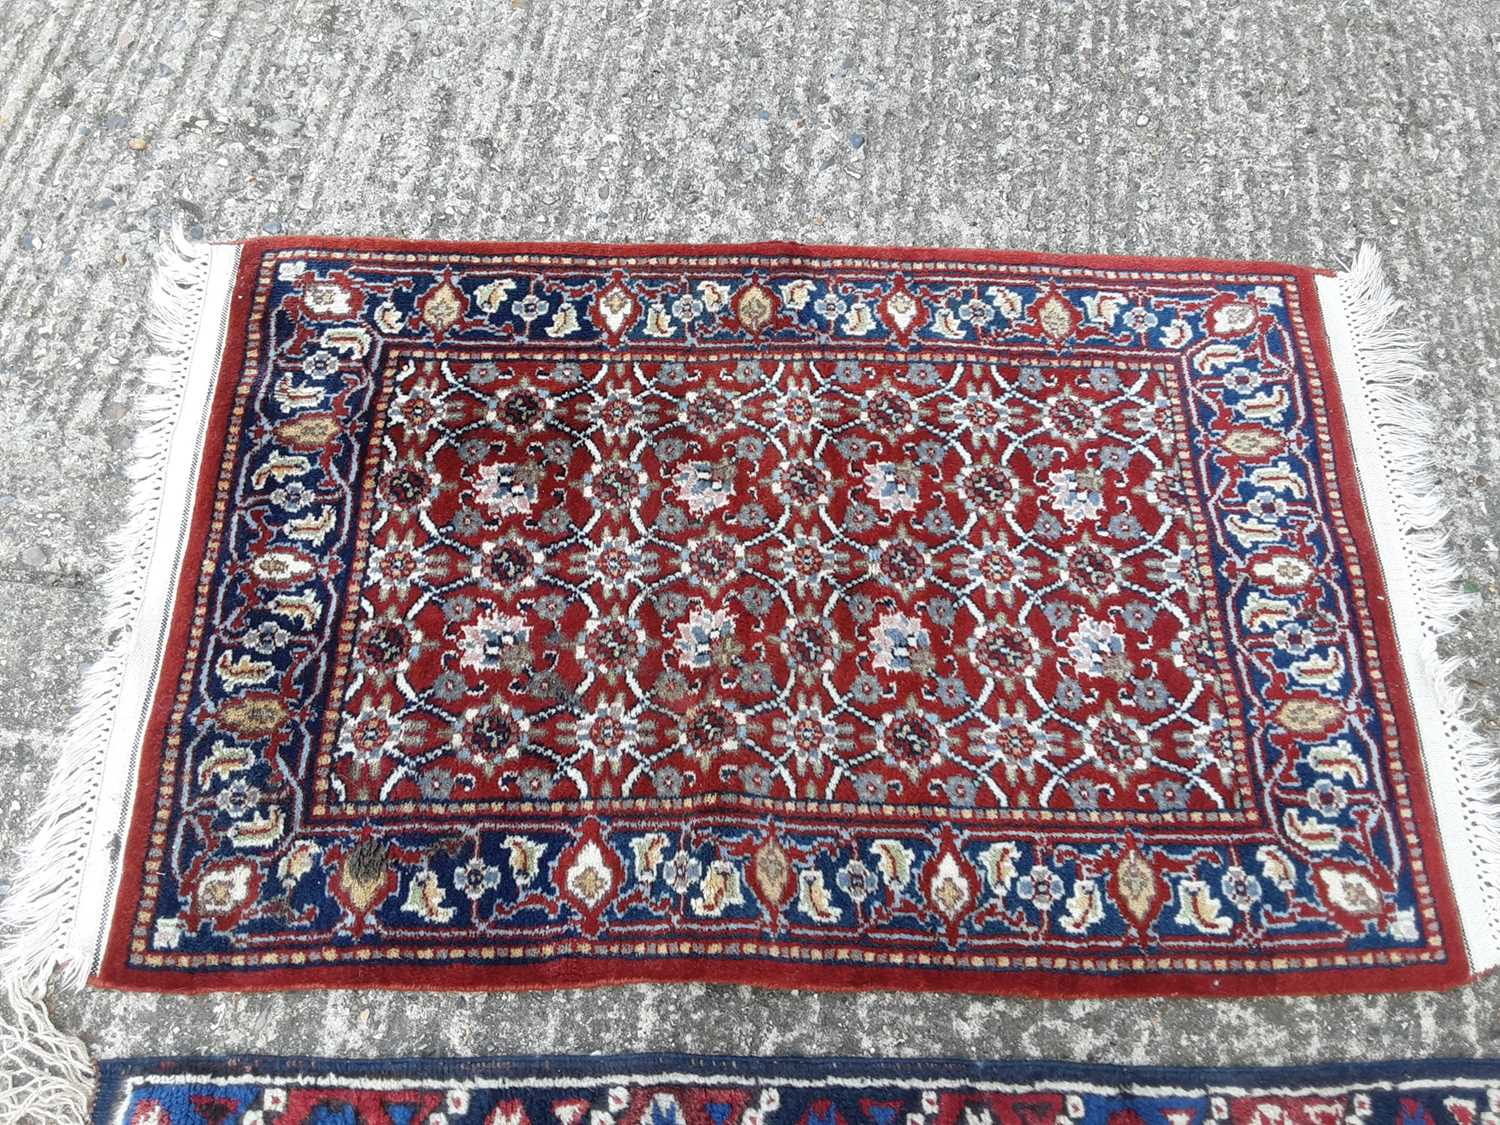 Two Eastern rugs with geometric decoration on red and blue ground, 113cm x 72cm and 97cm x 62cm - Image 2 of 3